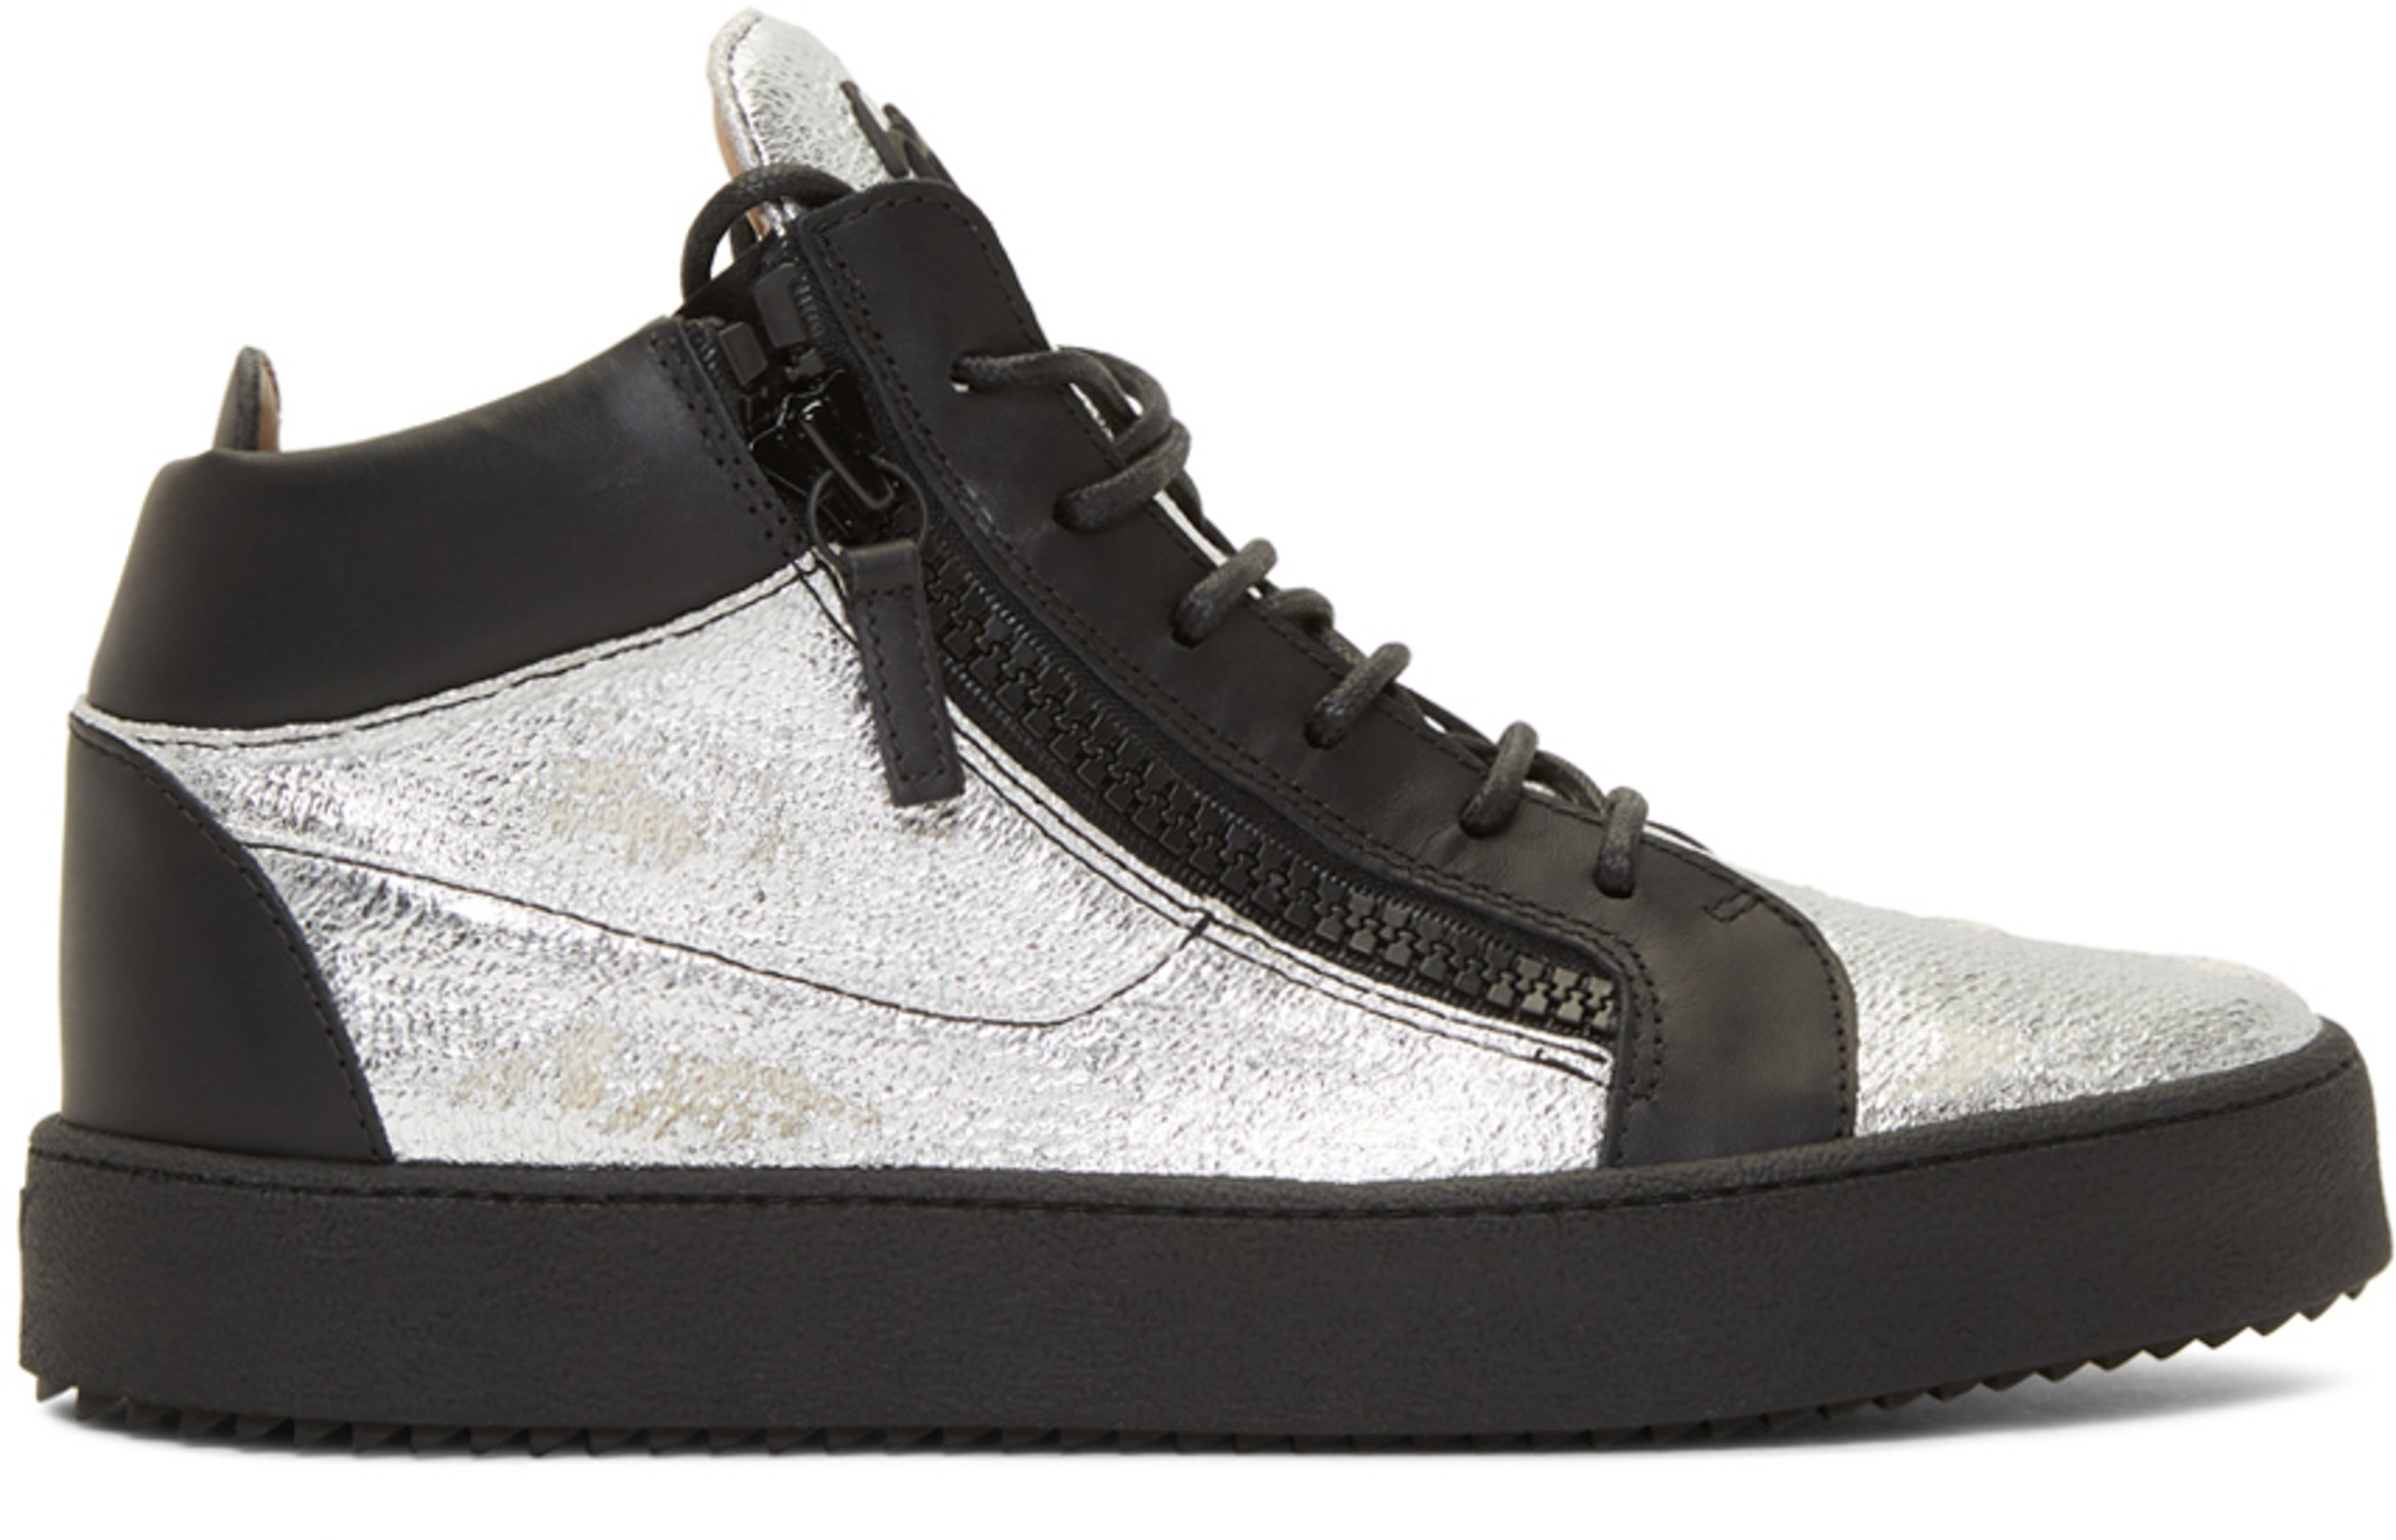 78bc7d211e68 Giuseppe Zanotti for Men SS19 Collection